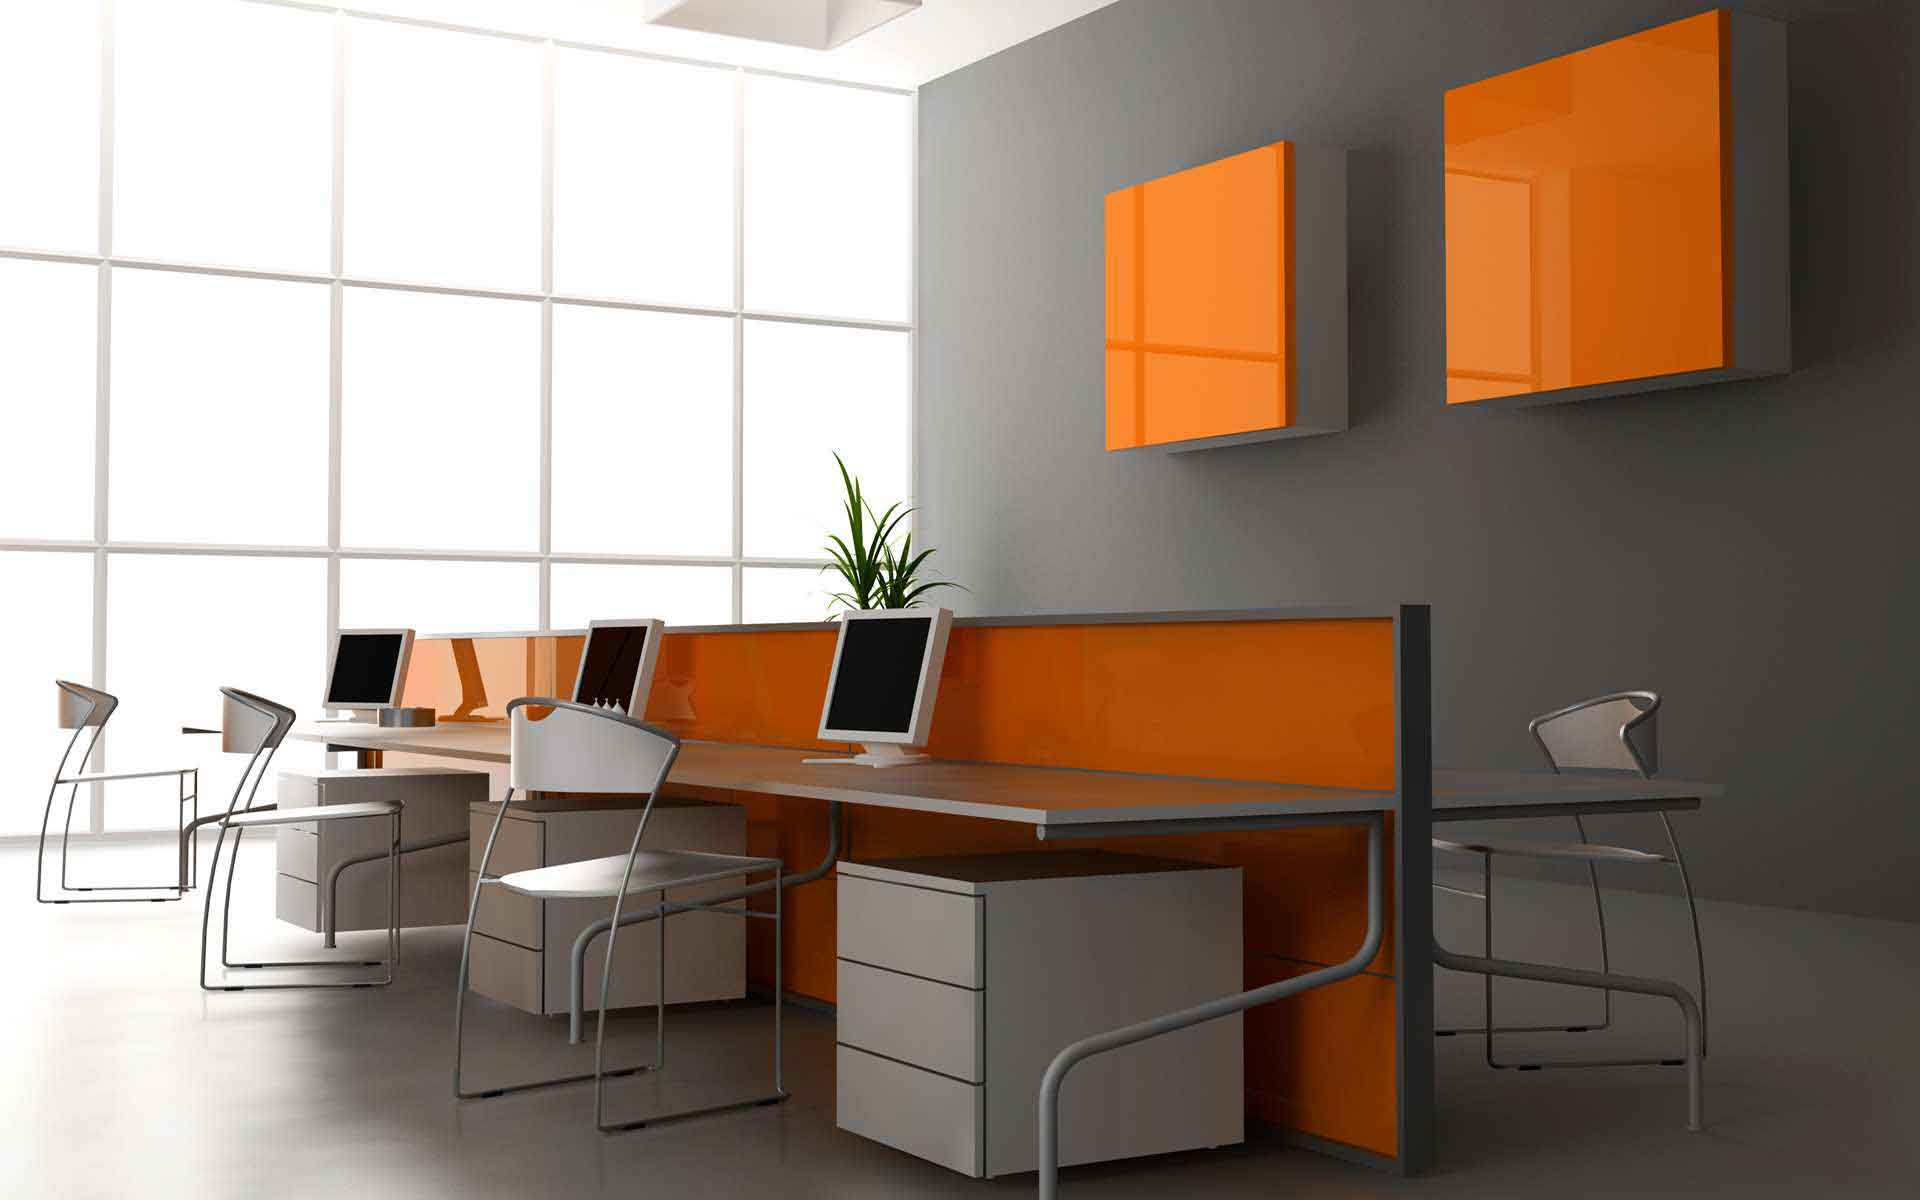 computer-office-design-manufacturers-furniture-chairs-corporate-on-interesting-ideas-office-workspace